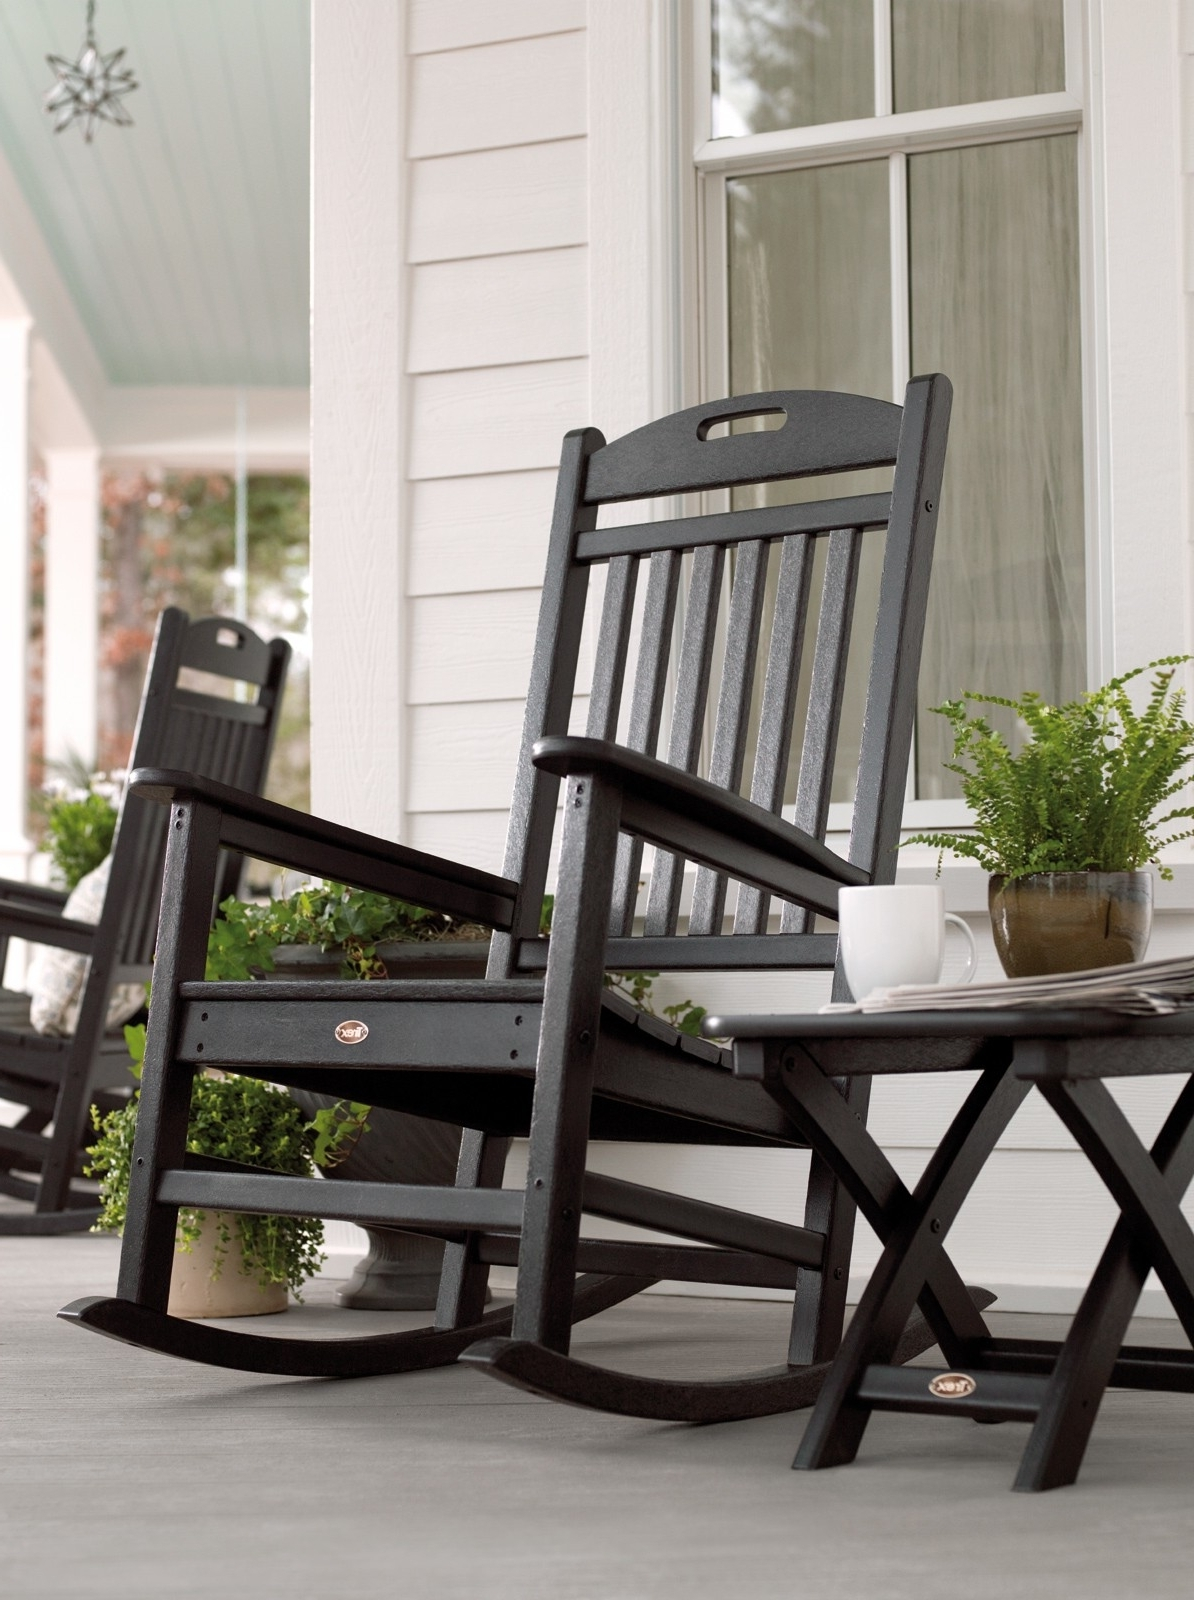 Latest Black Patio Rocking Chairs With Regard To Patio & Garden : Outdoor Rocking Chair Seat Cushions Outdoor Rocking (View 9 of 15)